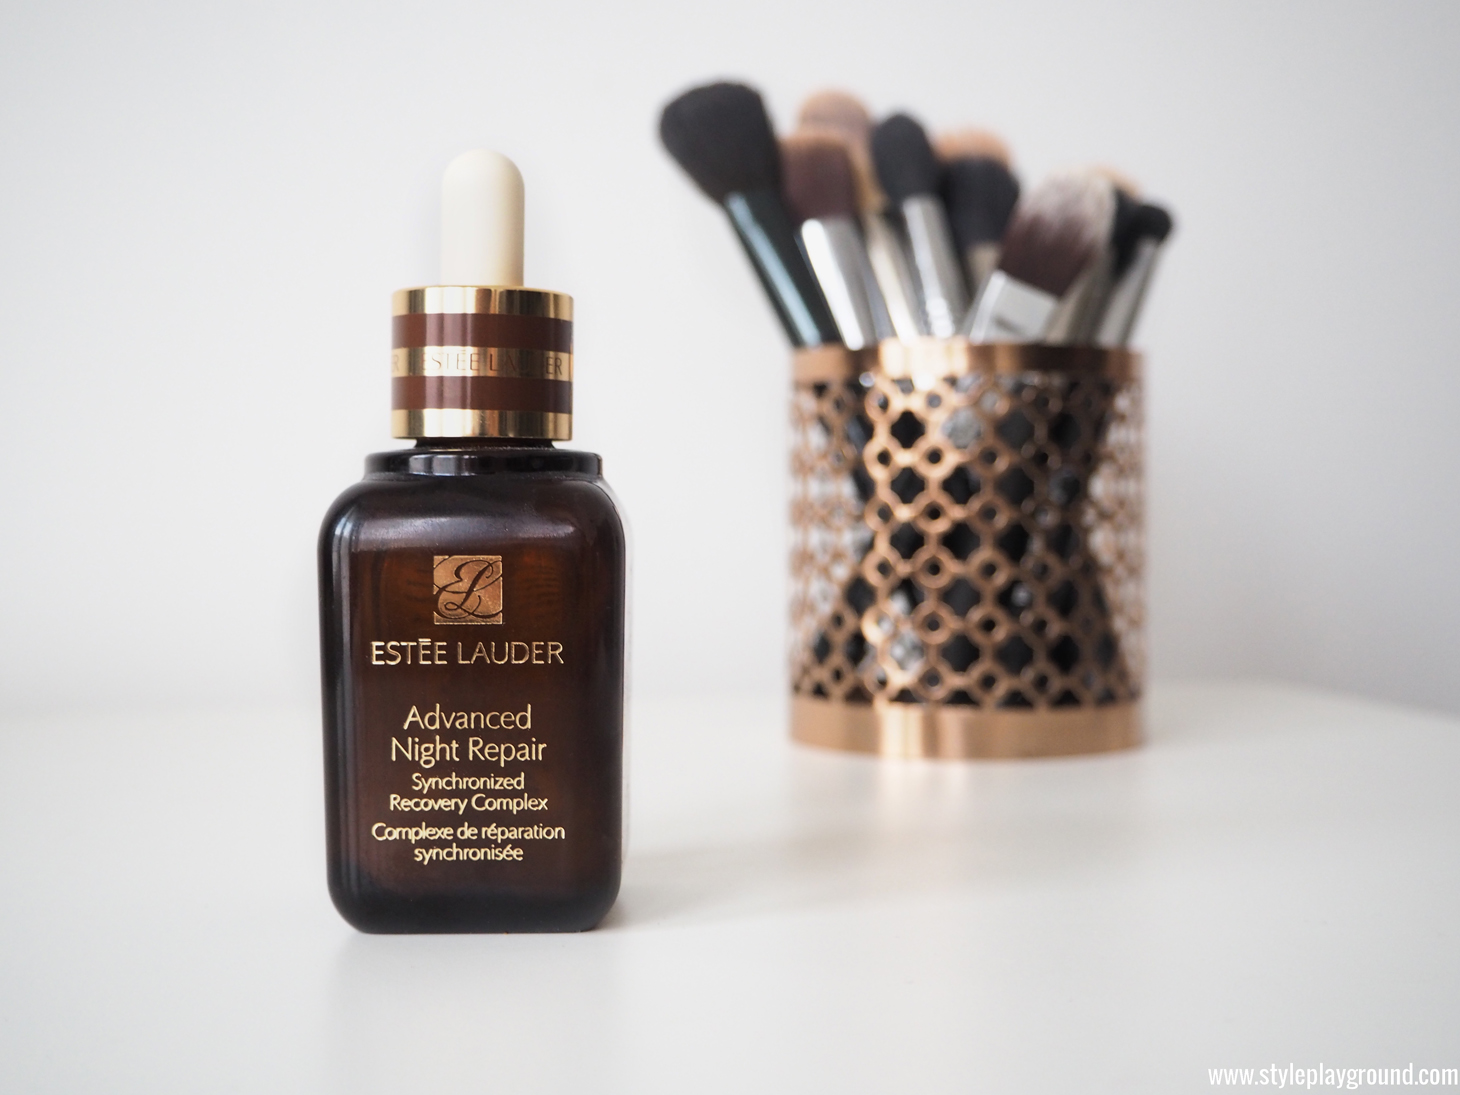 Estee Lauder Advanced night repair serum review